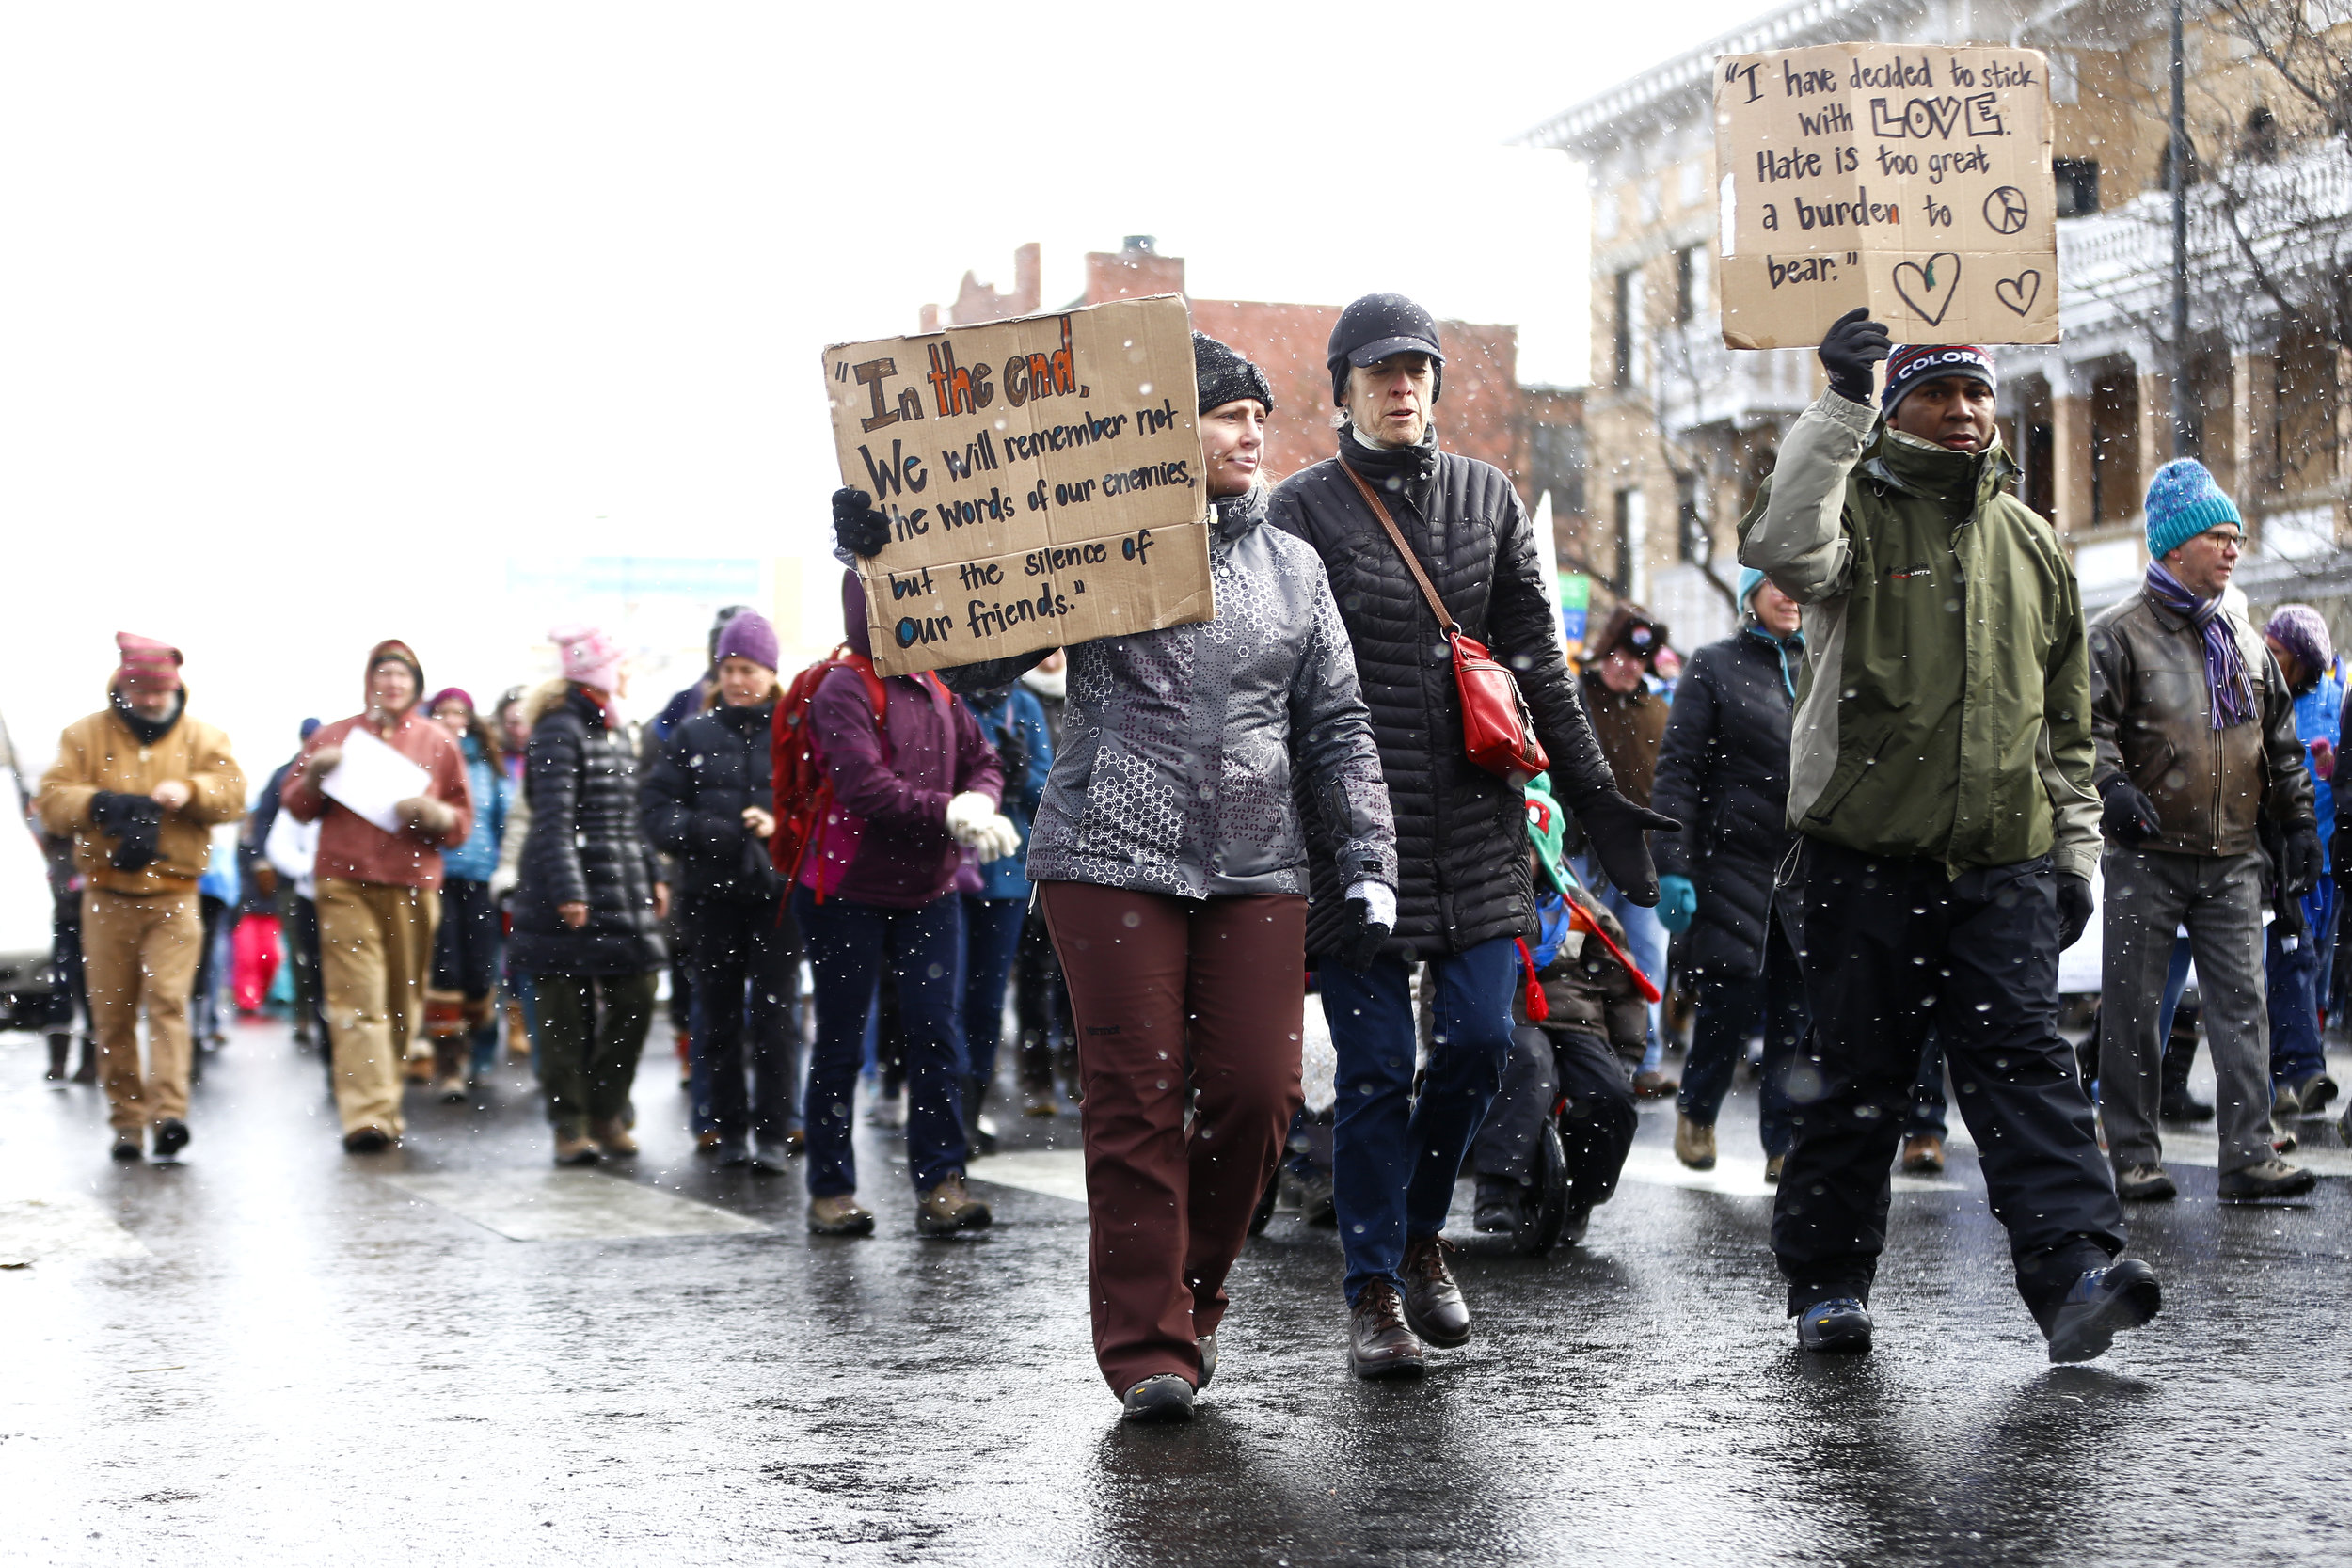 Crowds braved the elements during this mornings march. (Photo Credit: Aly McClaran